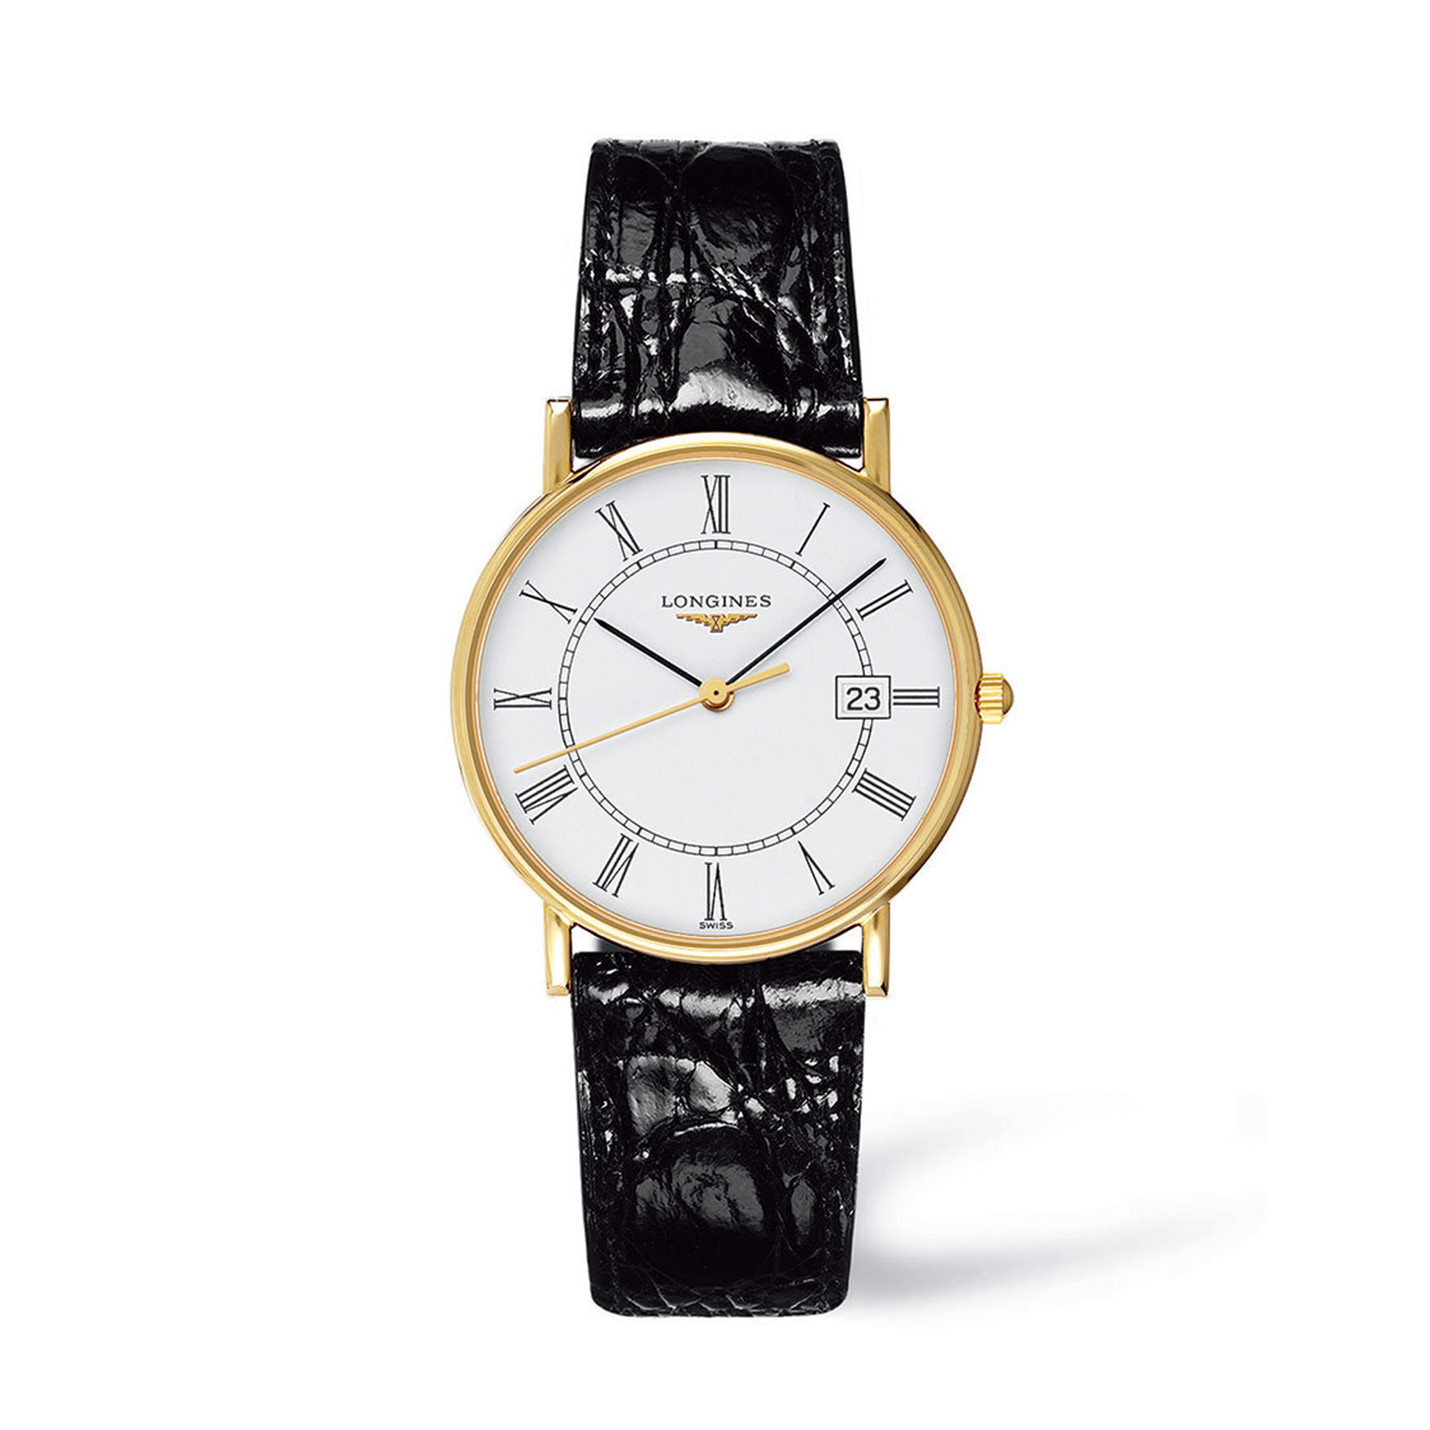 Longines Presence Collection – Gold & Black Strap Watch